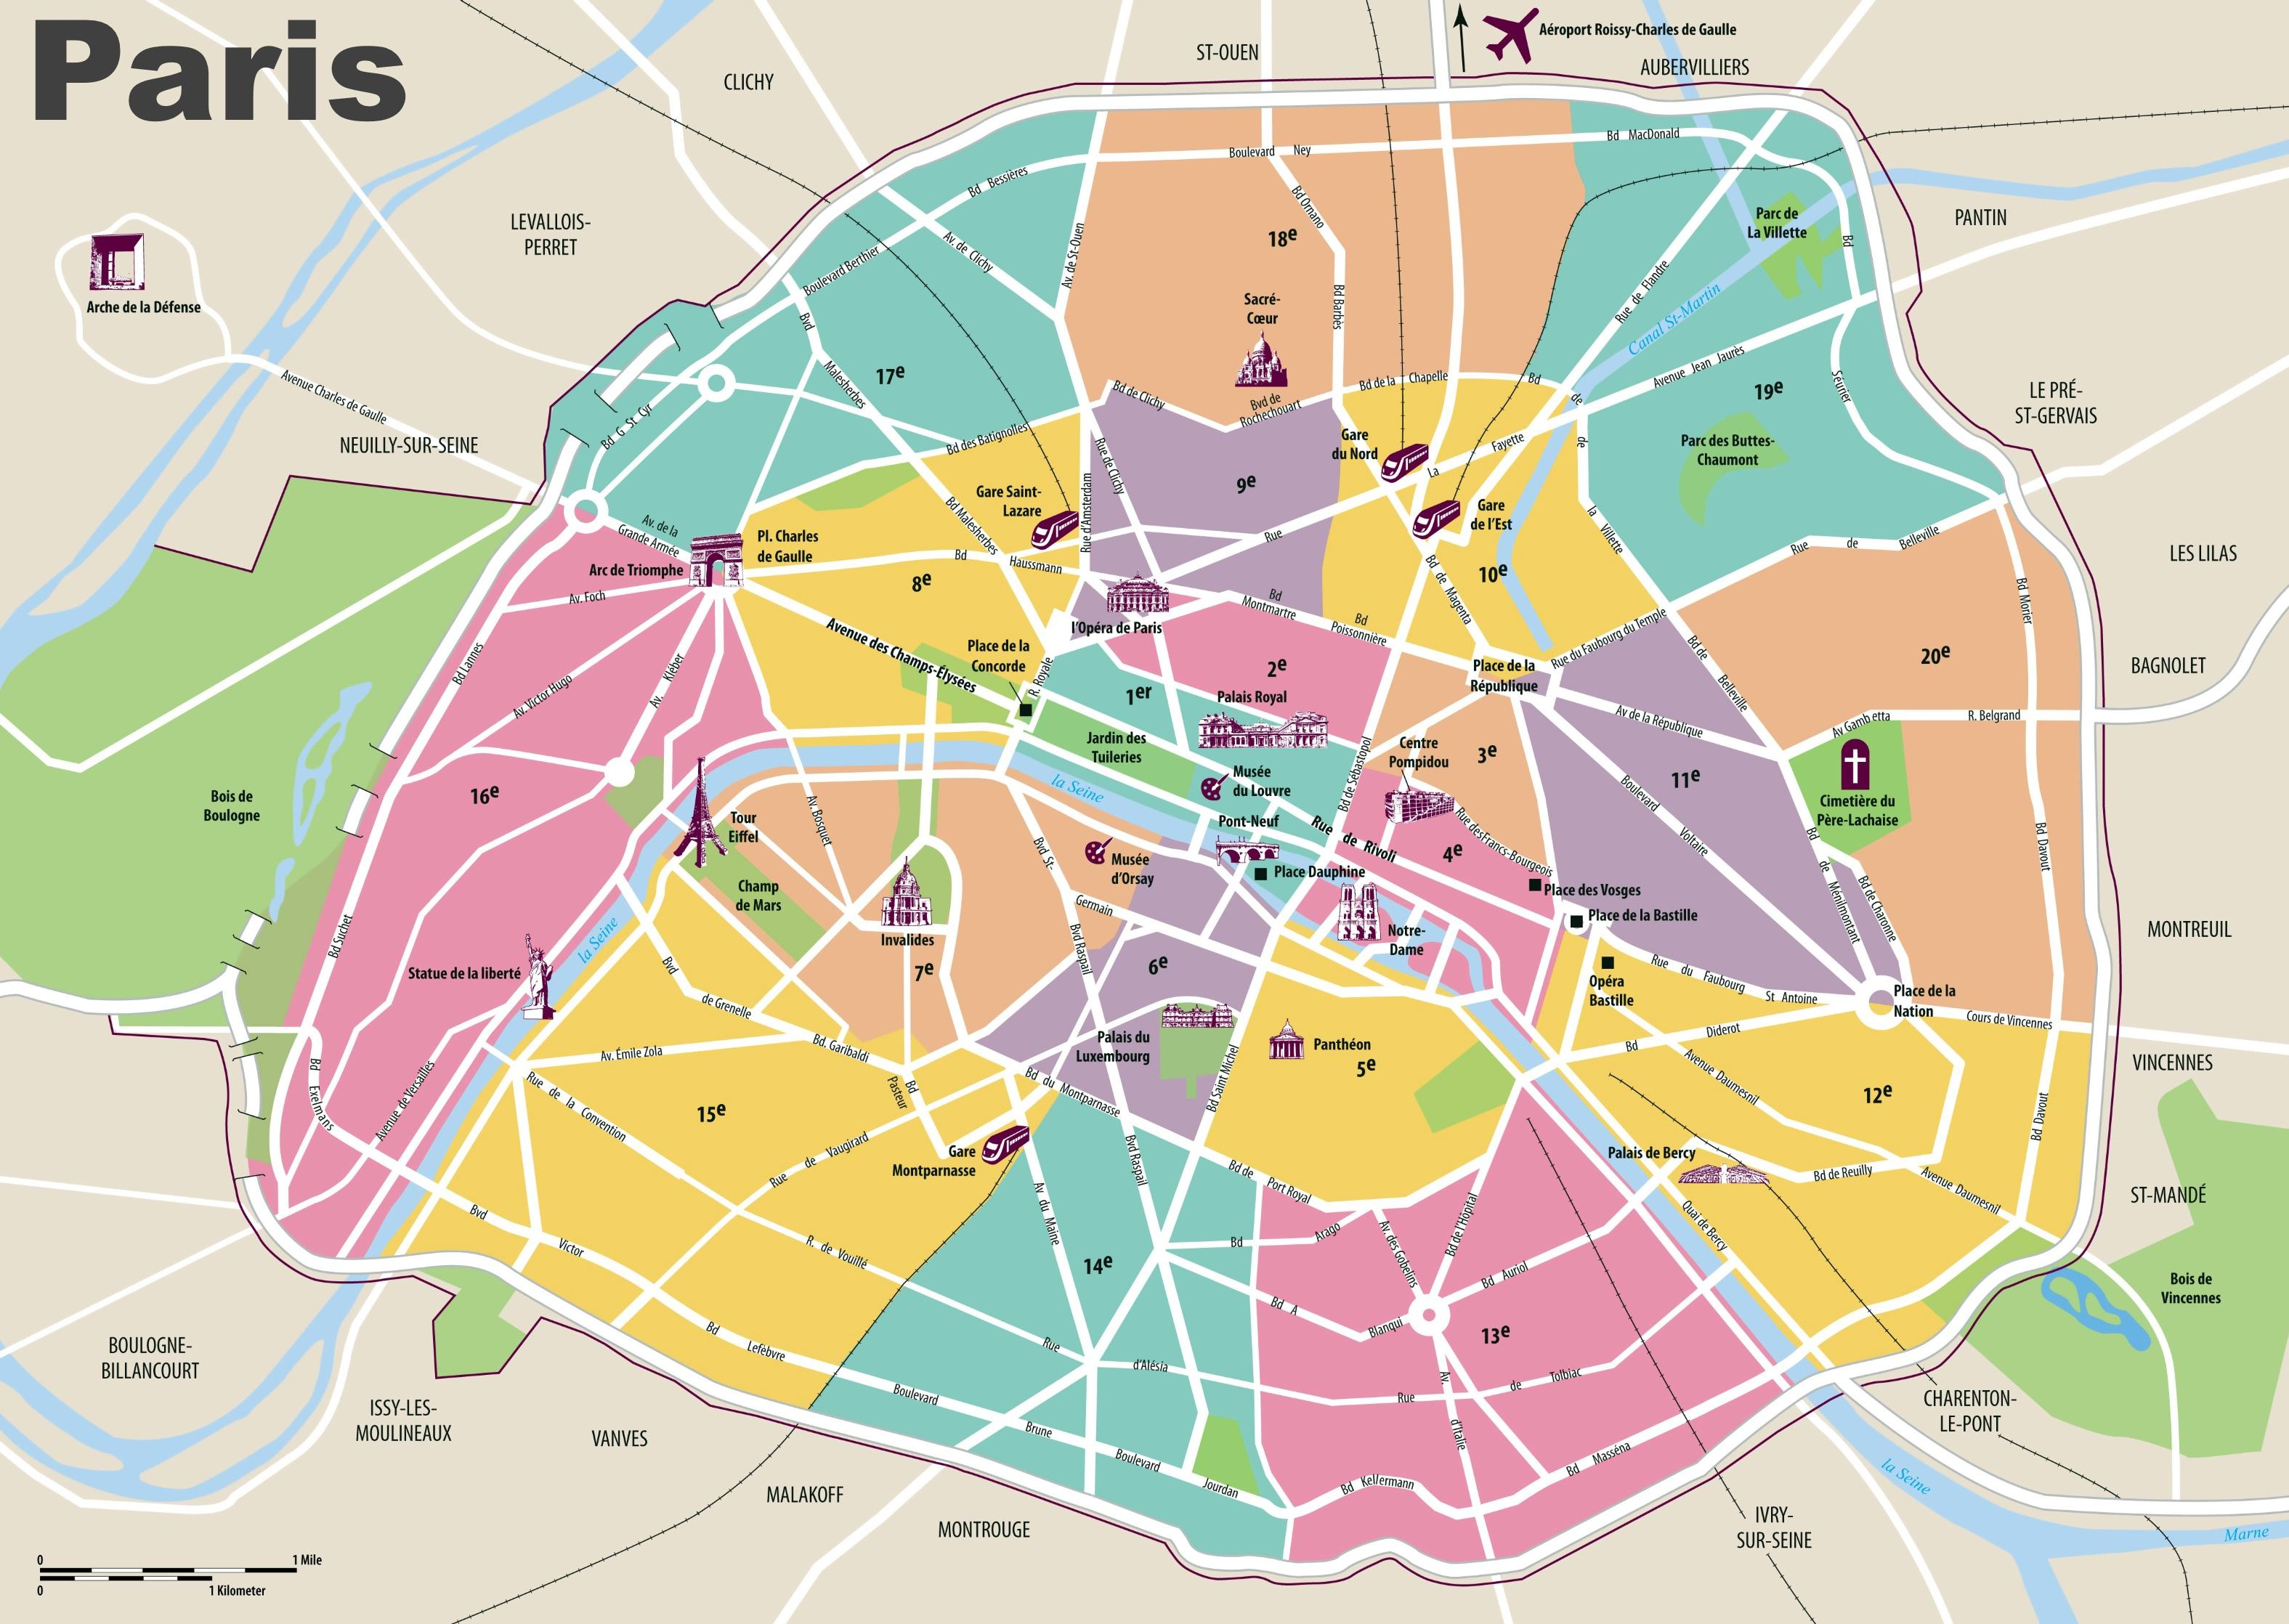 image about Printable Maps of Paris titled Paris France map of points of interest - Paris most important sights map